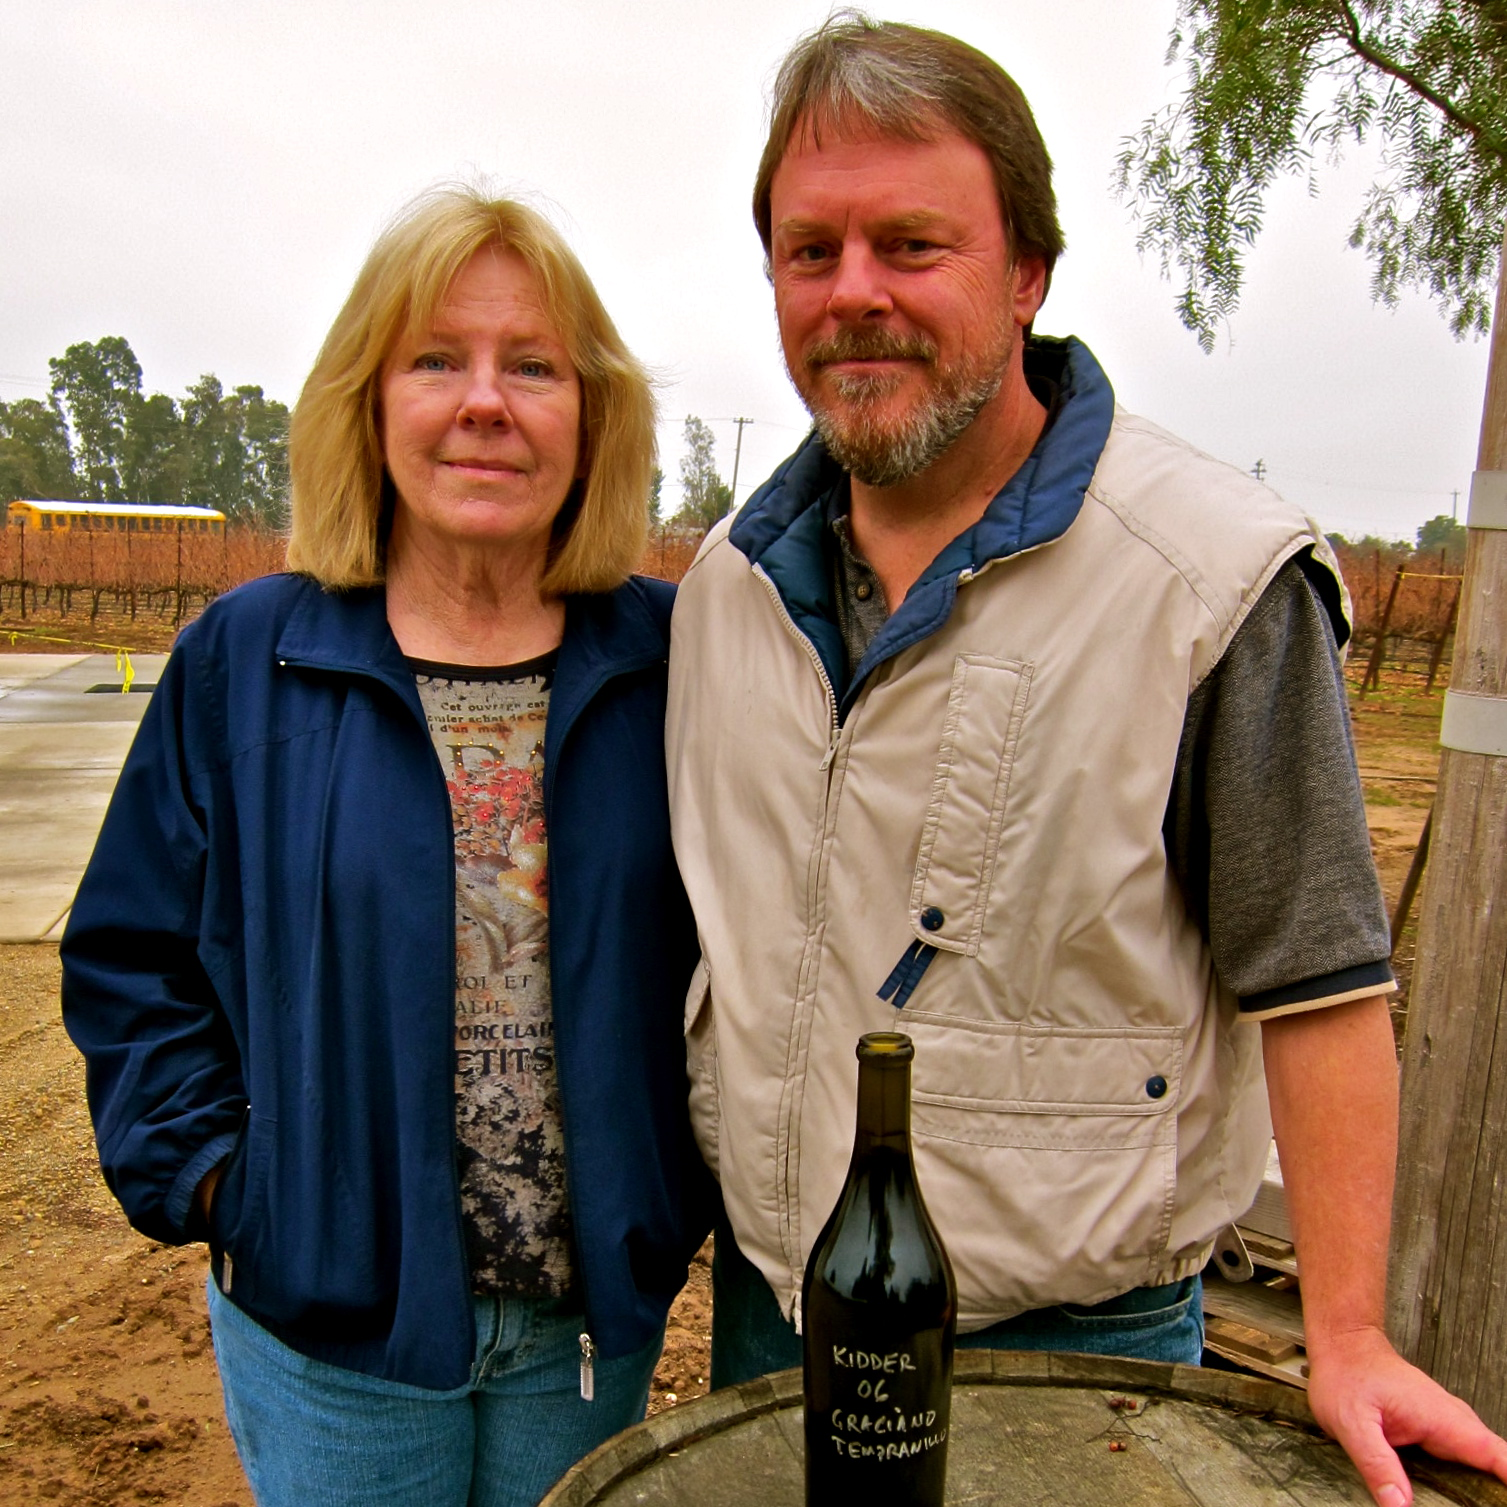 Kidder Family rising star wines